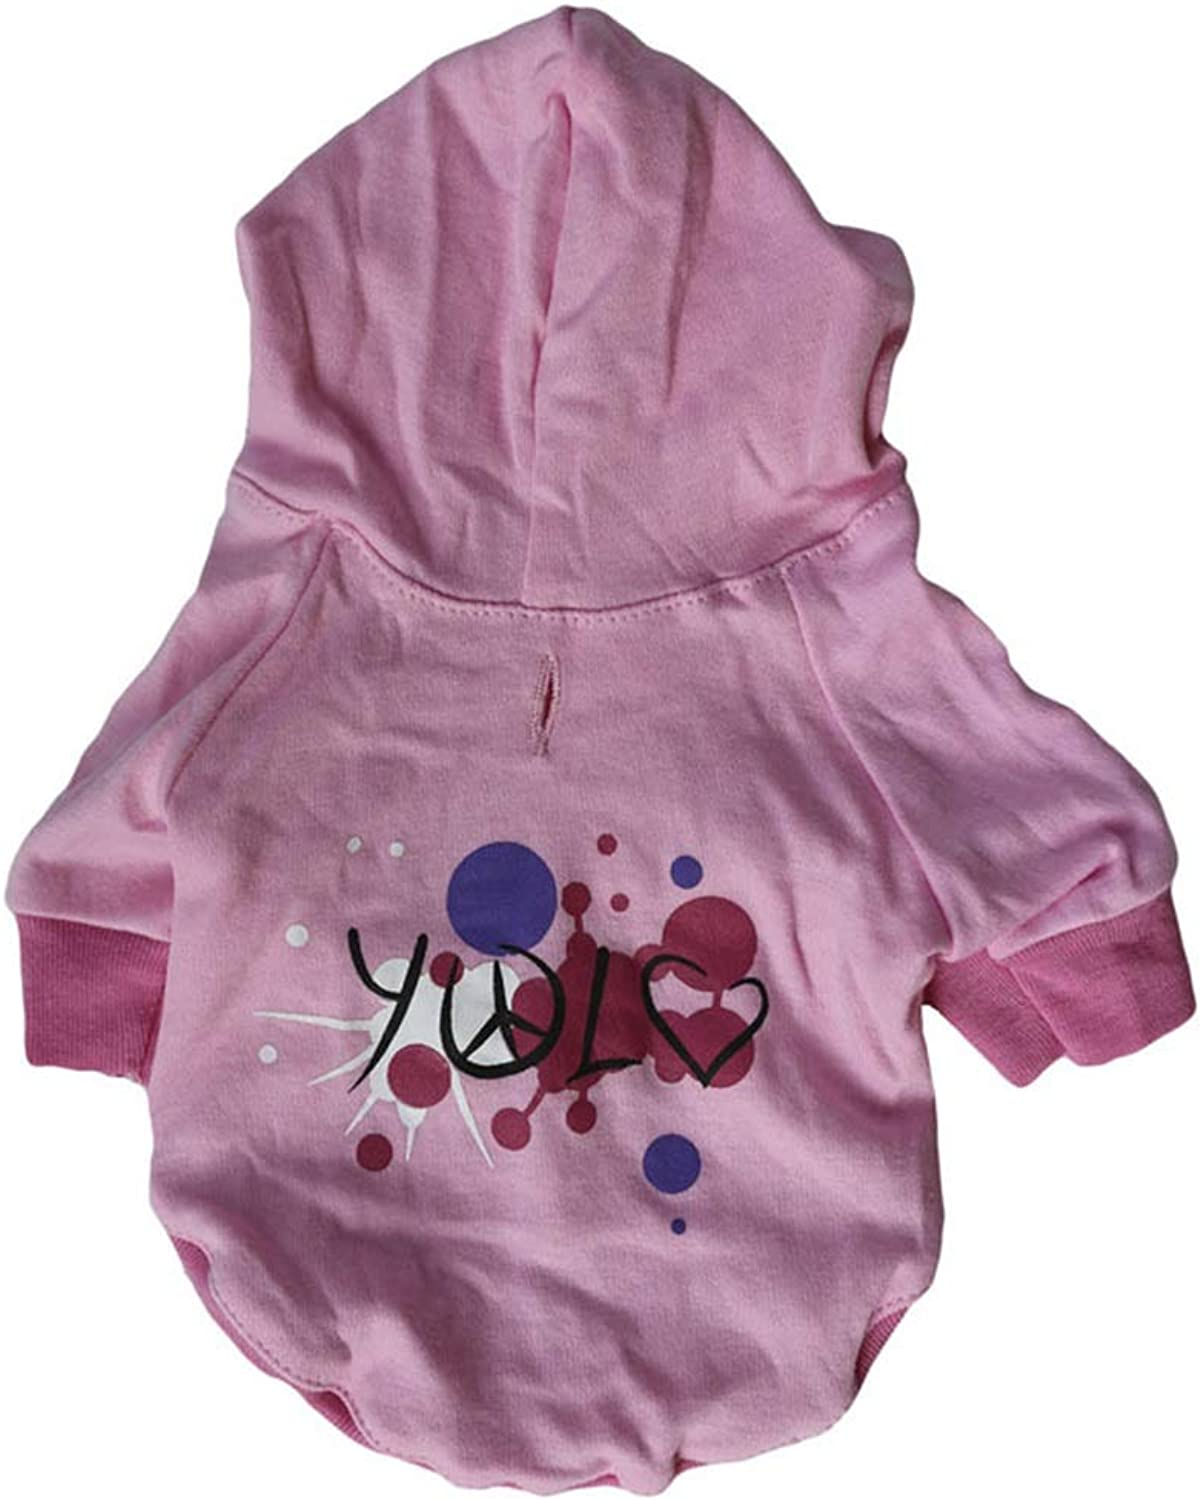 Huayue Precious Cotton Pink TShirt Dog Costume Hoodie (color   As Shown, Size   L)